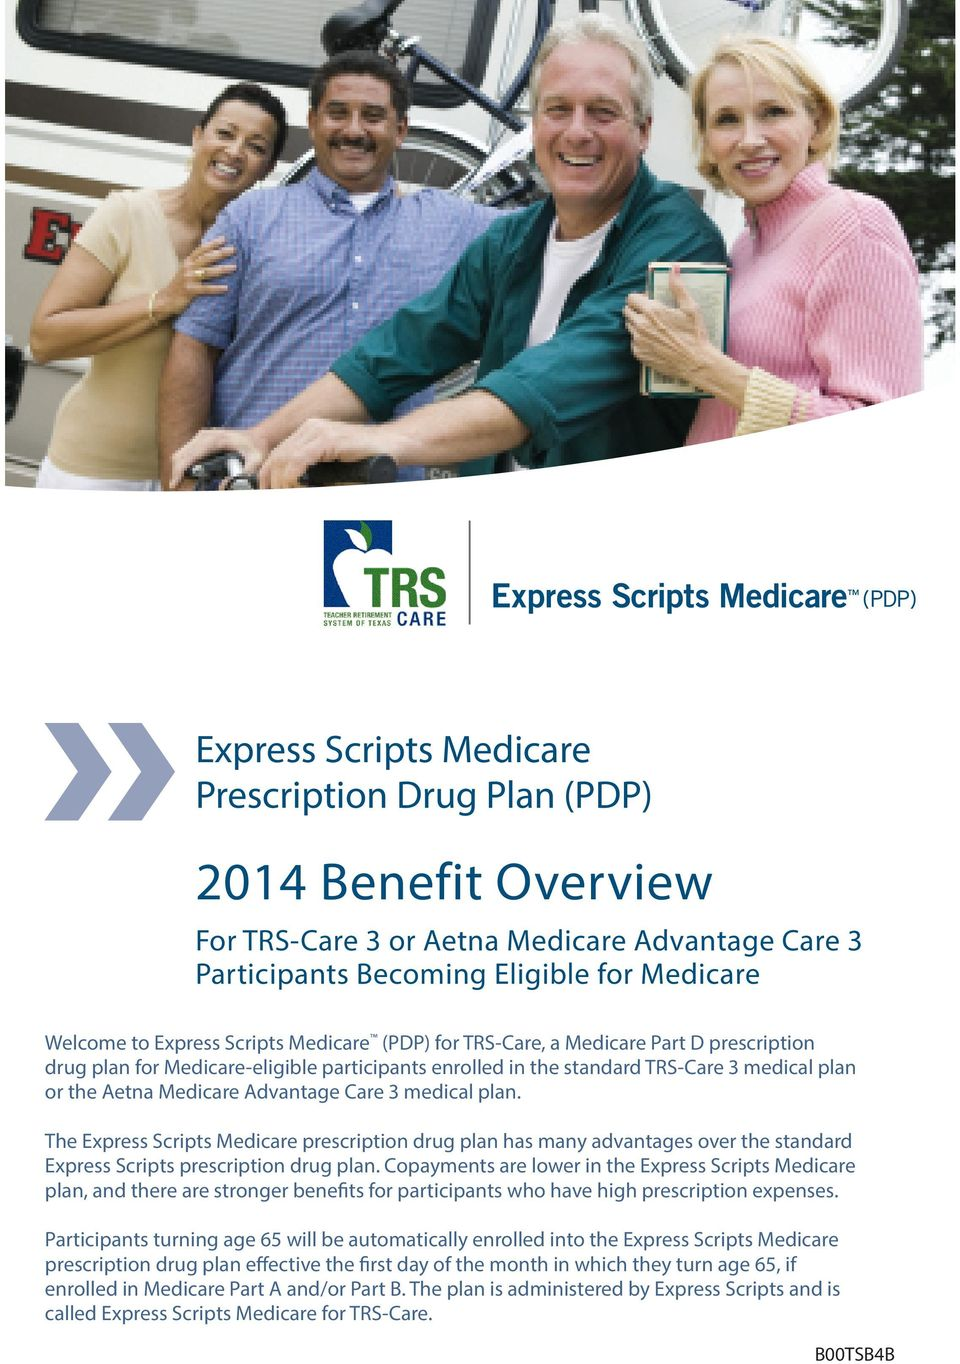 medical plan. The Express Scripts Medicare prescription drug plan has many advantages over the standard Express Scripts prescription drug plan.